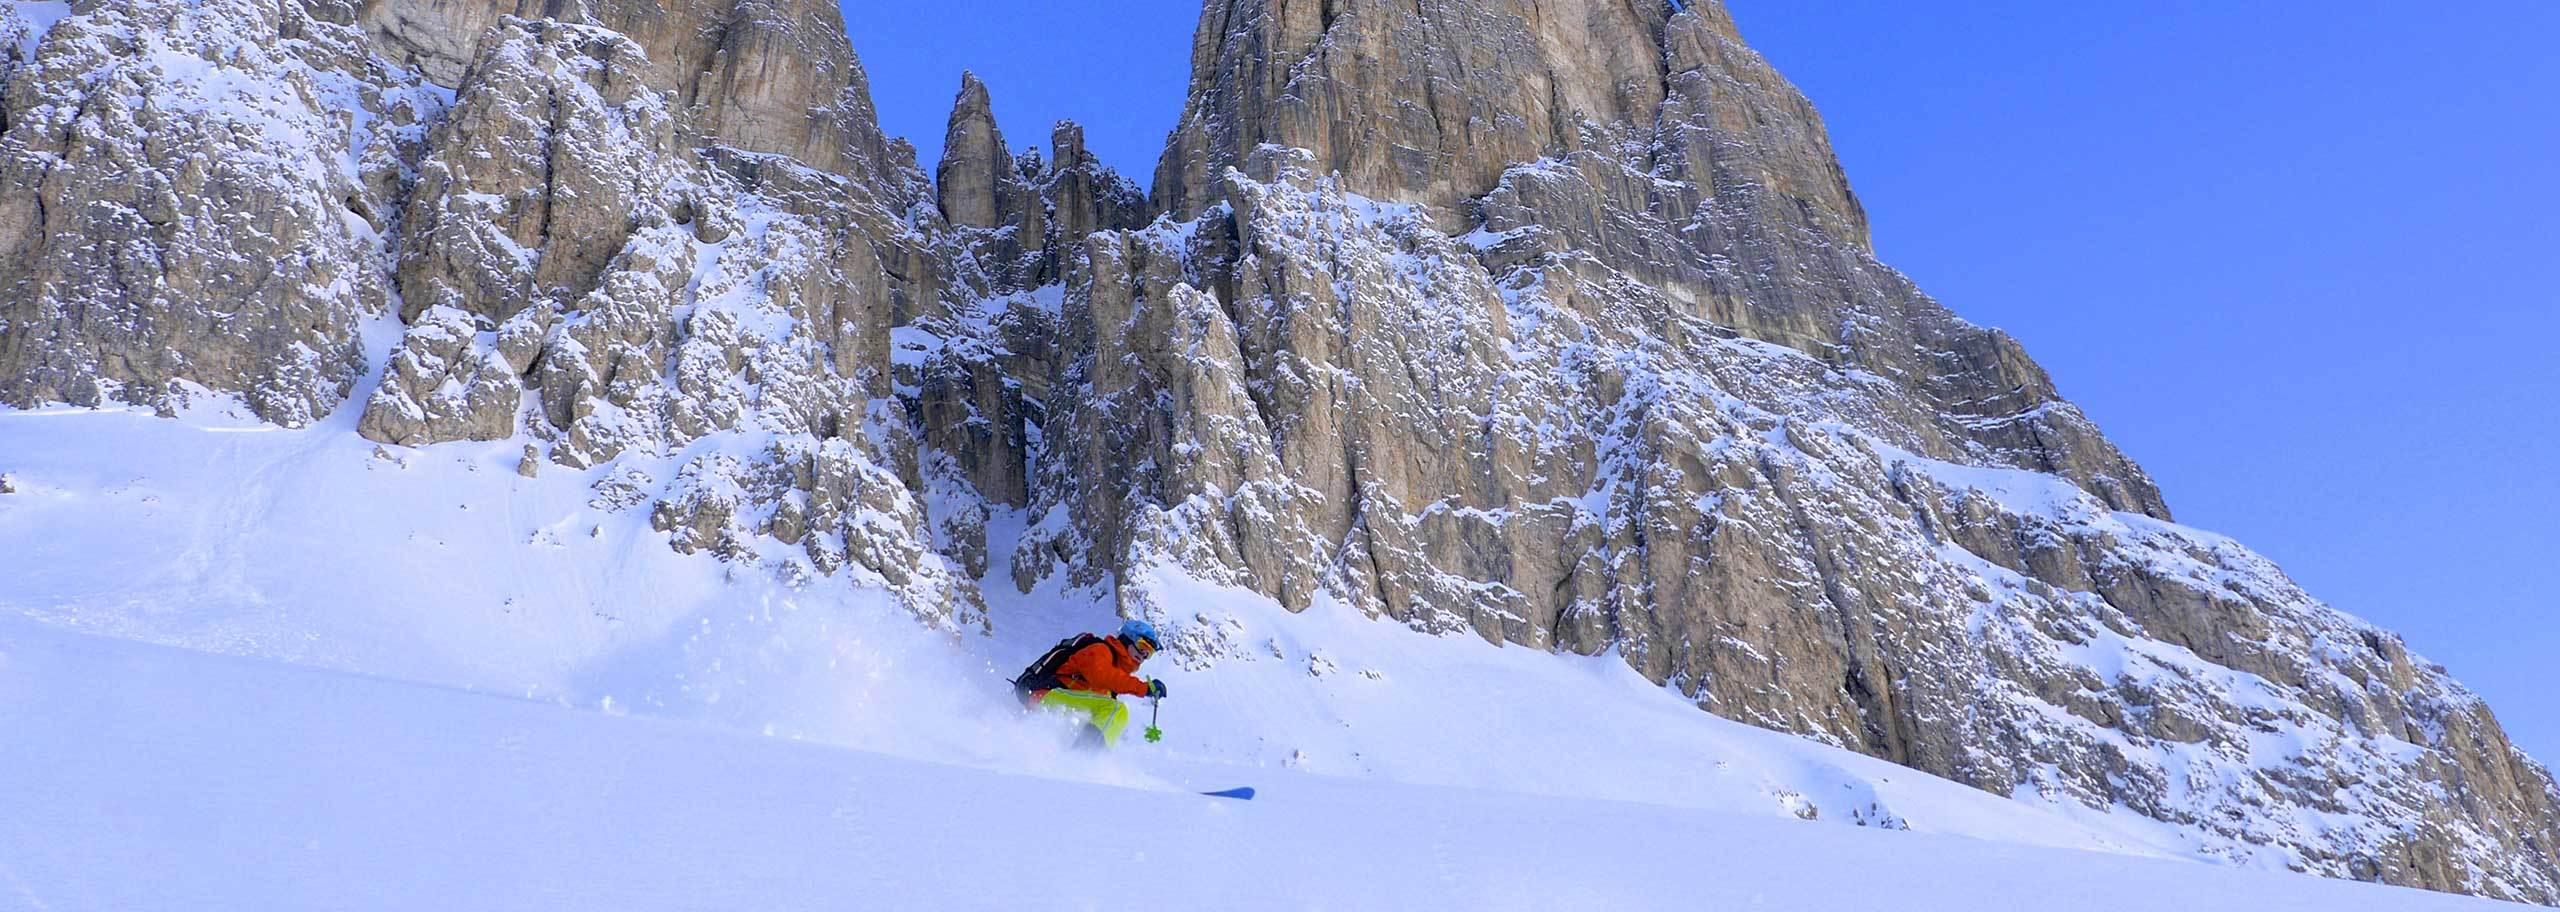 Off-piste Skiing with a Mountain Guide in Carezza